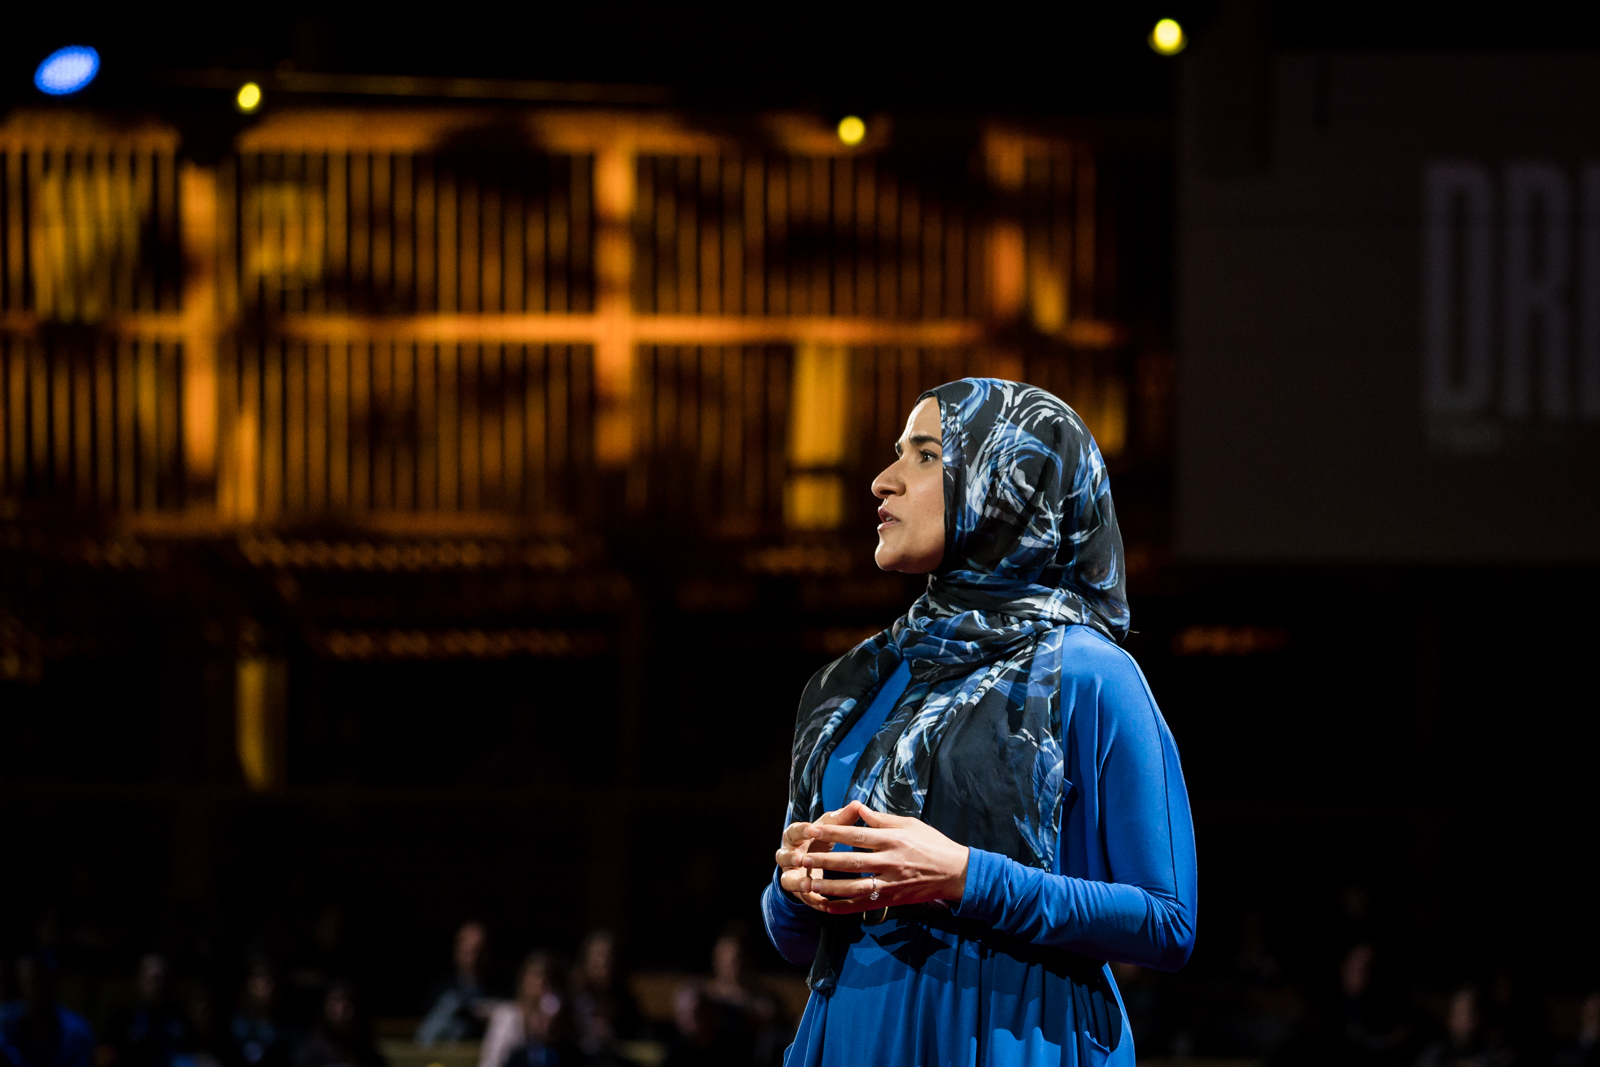 Dalia Mogahed speaks at TED2016 - Dream, February 15-19, 2016, Vancouver Convention Center, Vancouver, Canada. Photo: Bret Hartman / TED